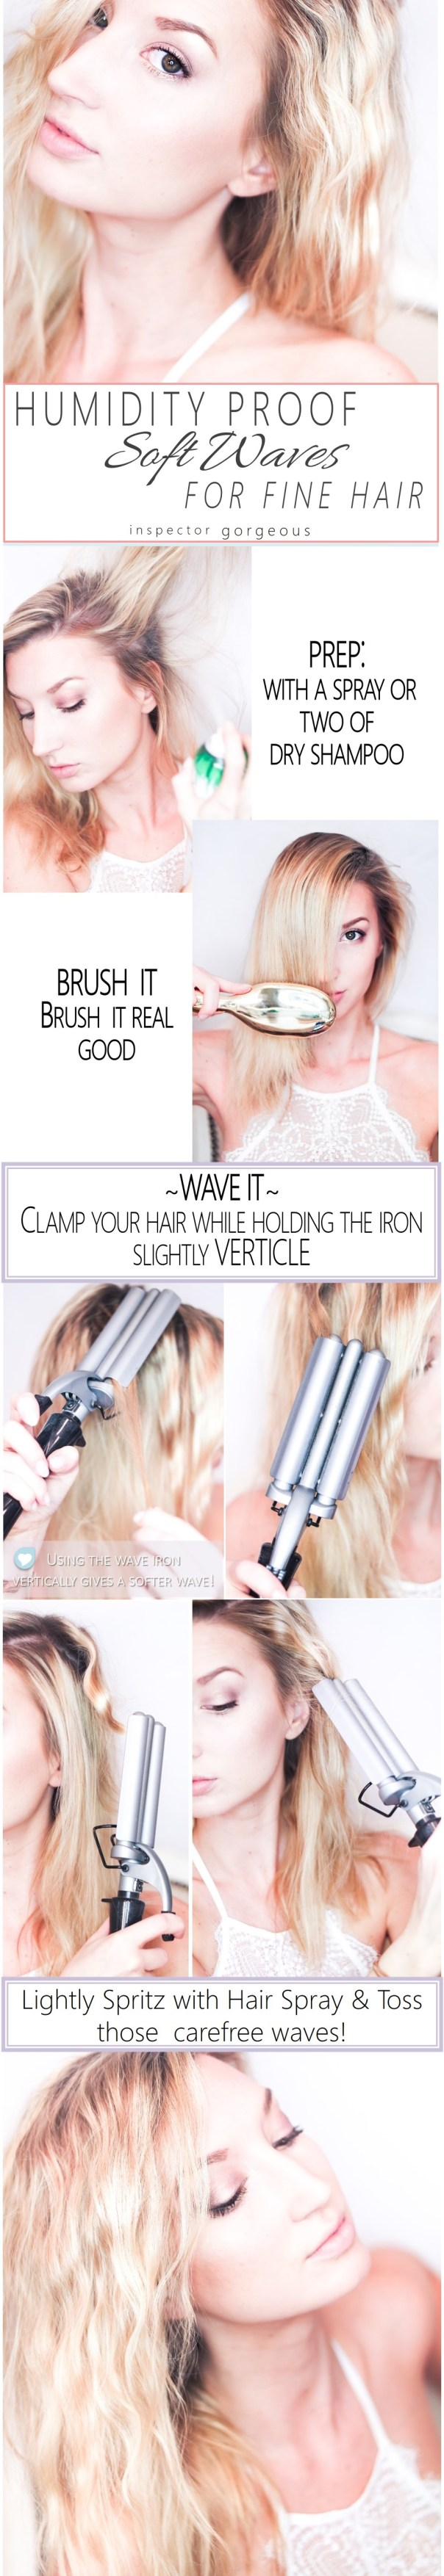 Humidity Proof Waves